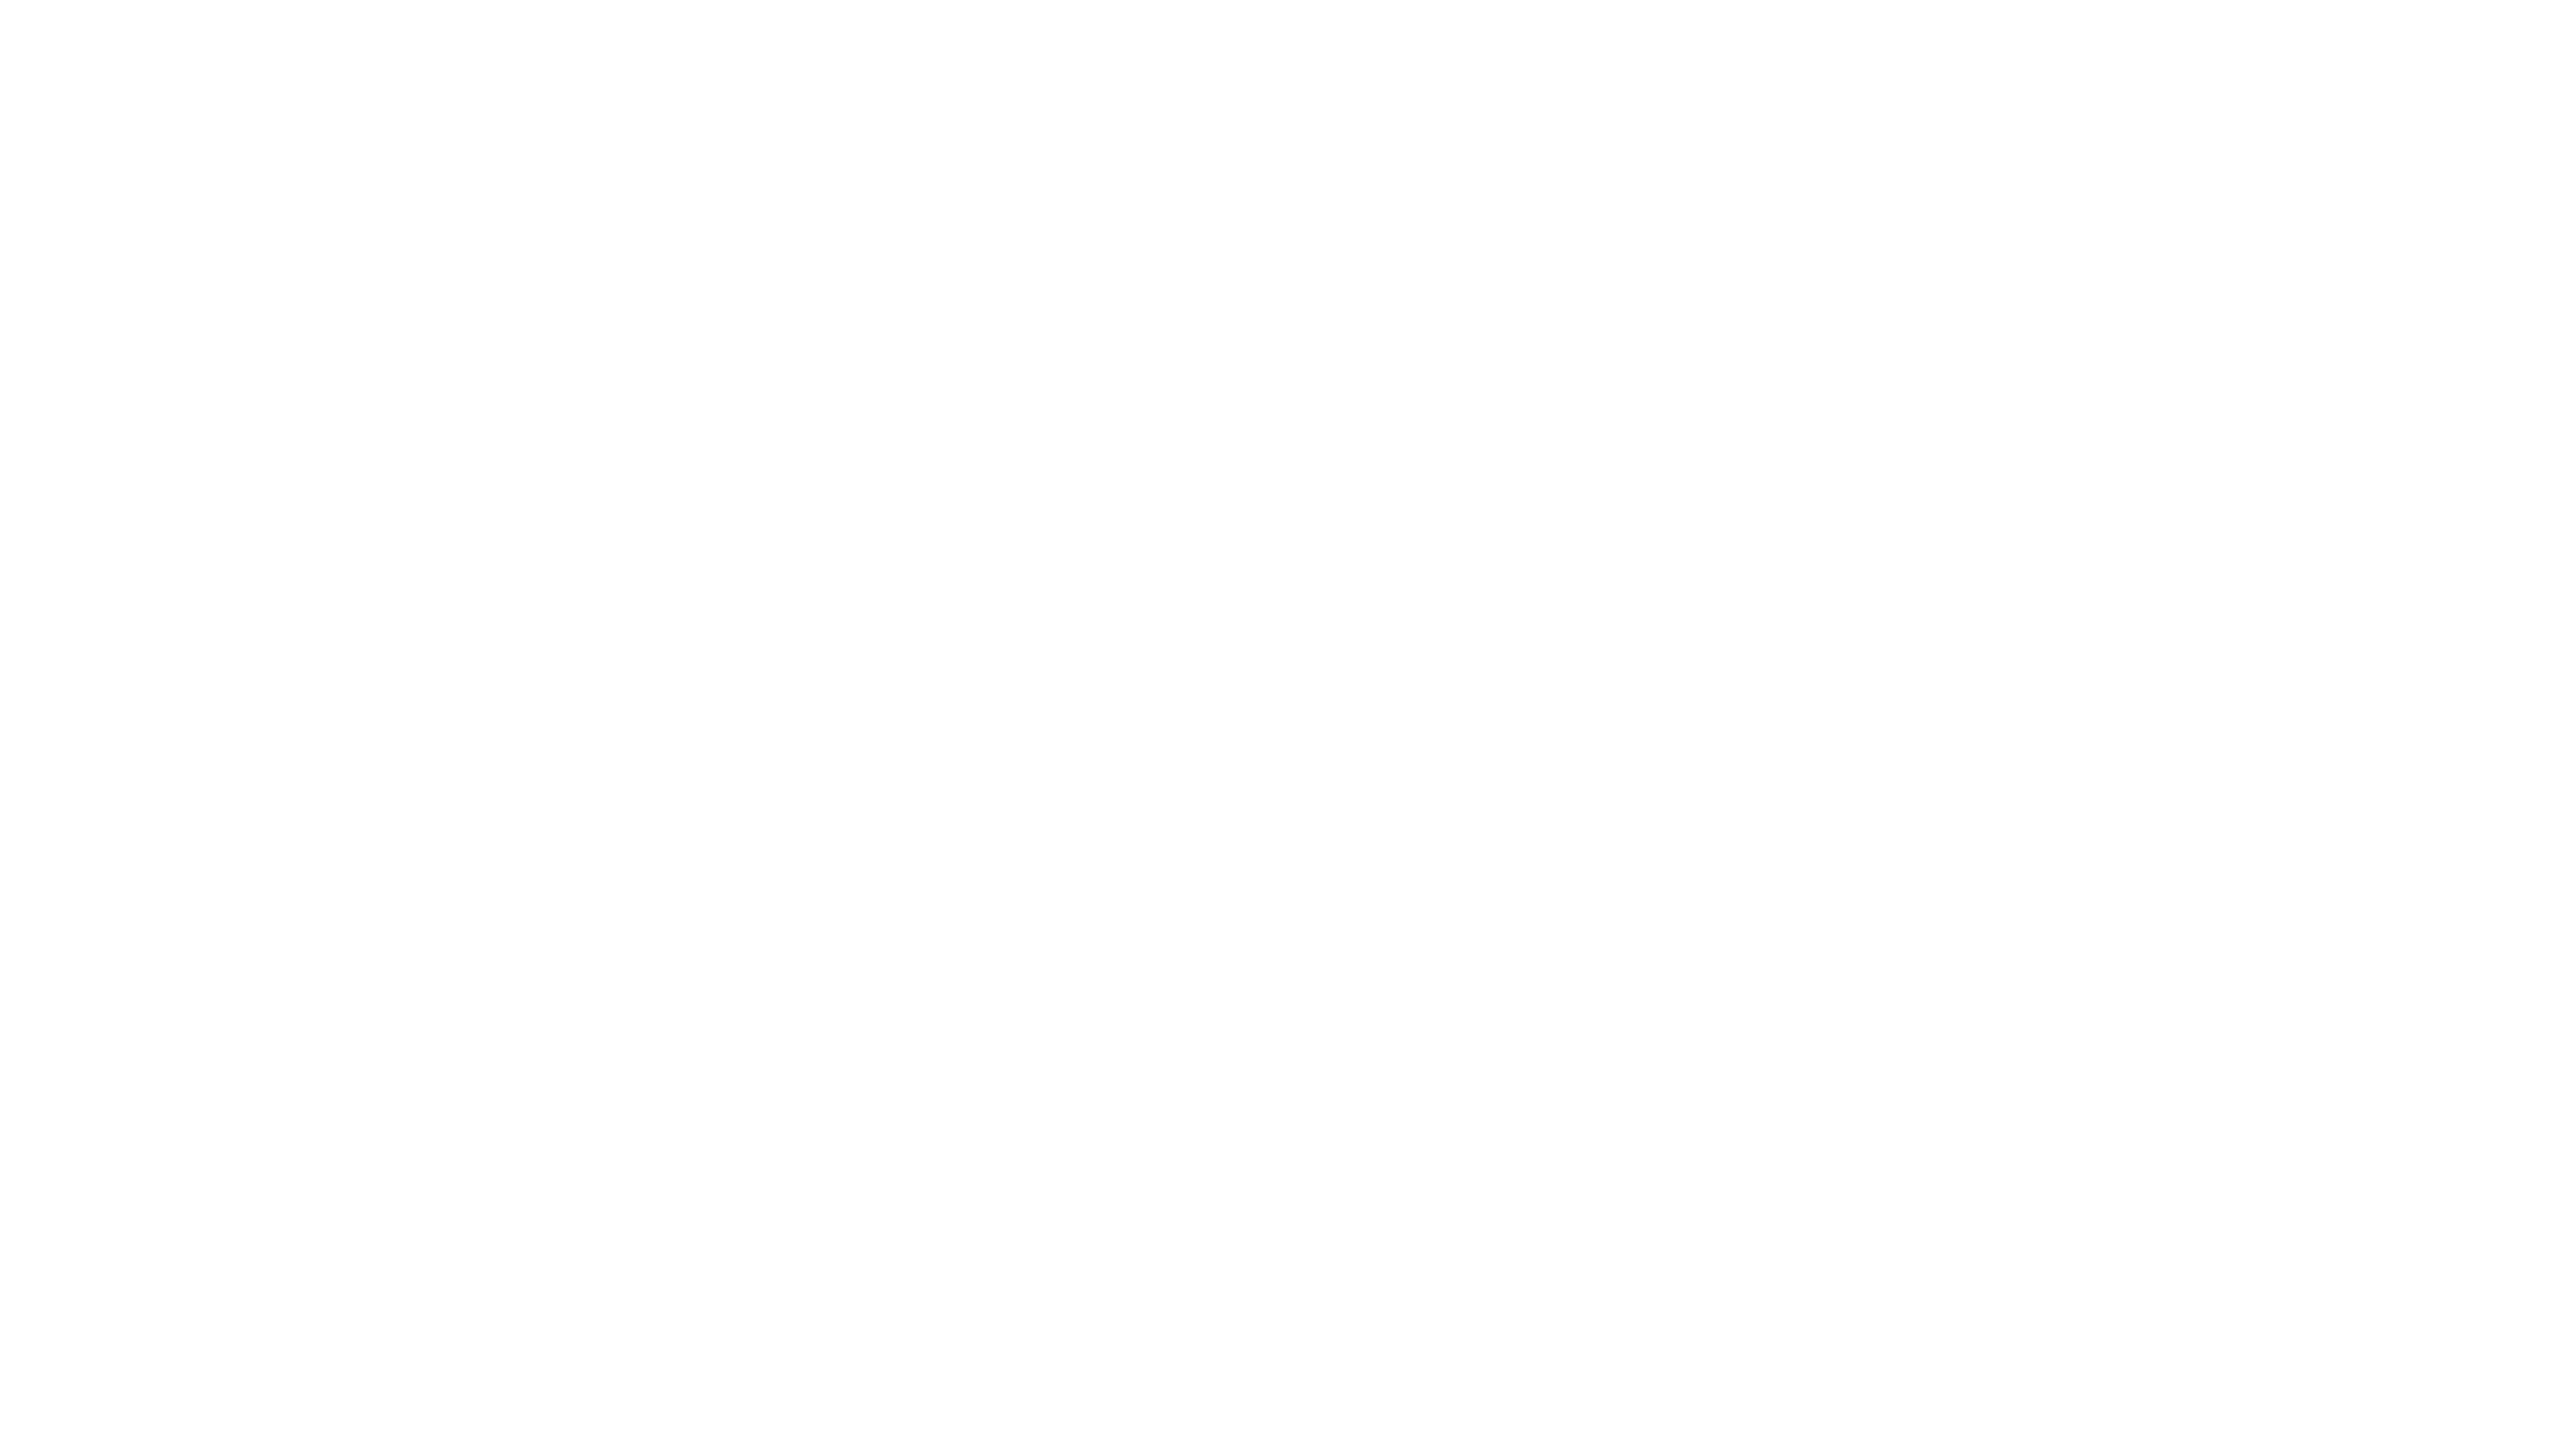 Technical Direction Company